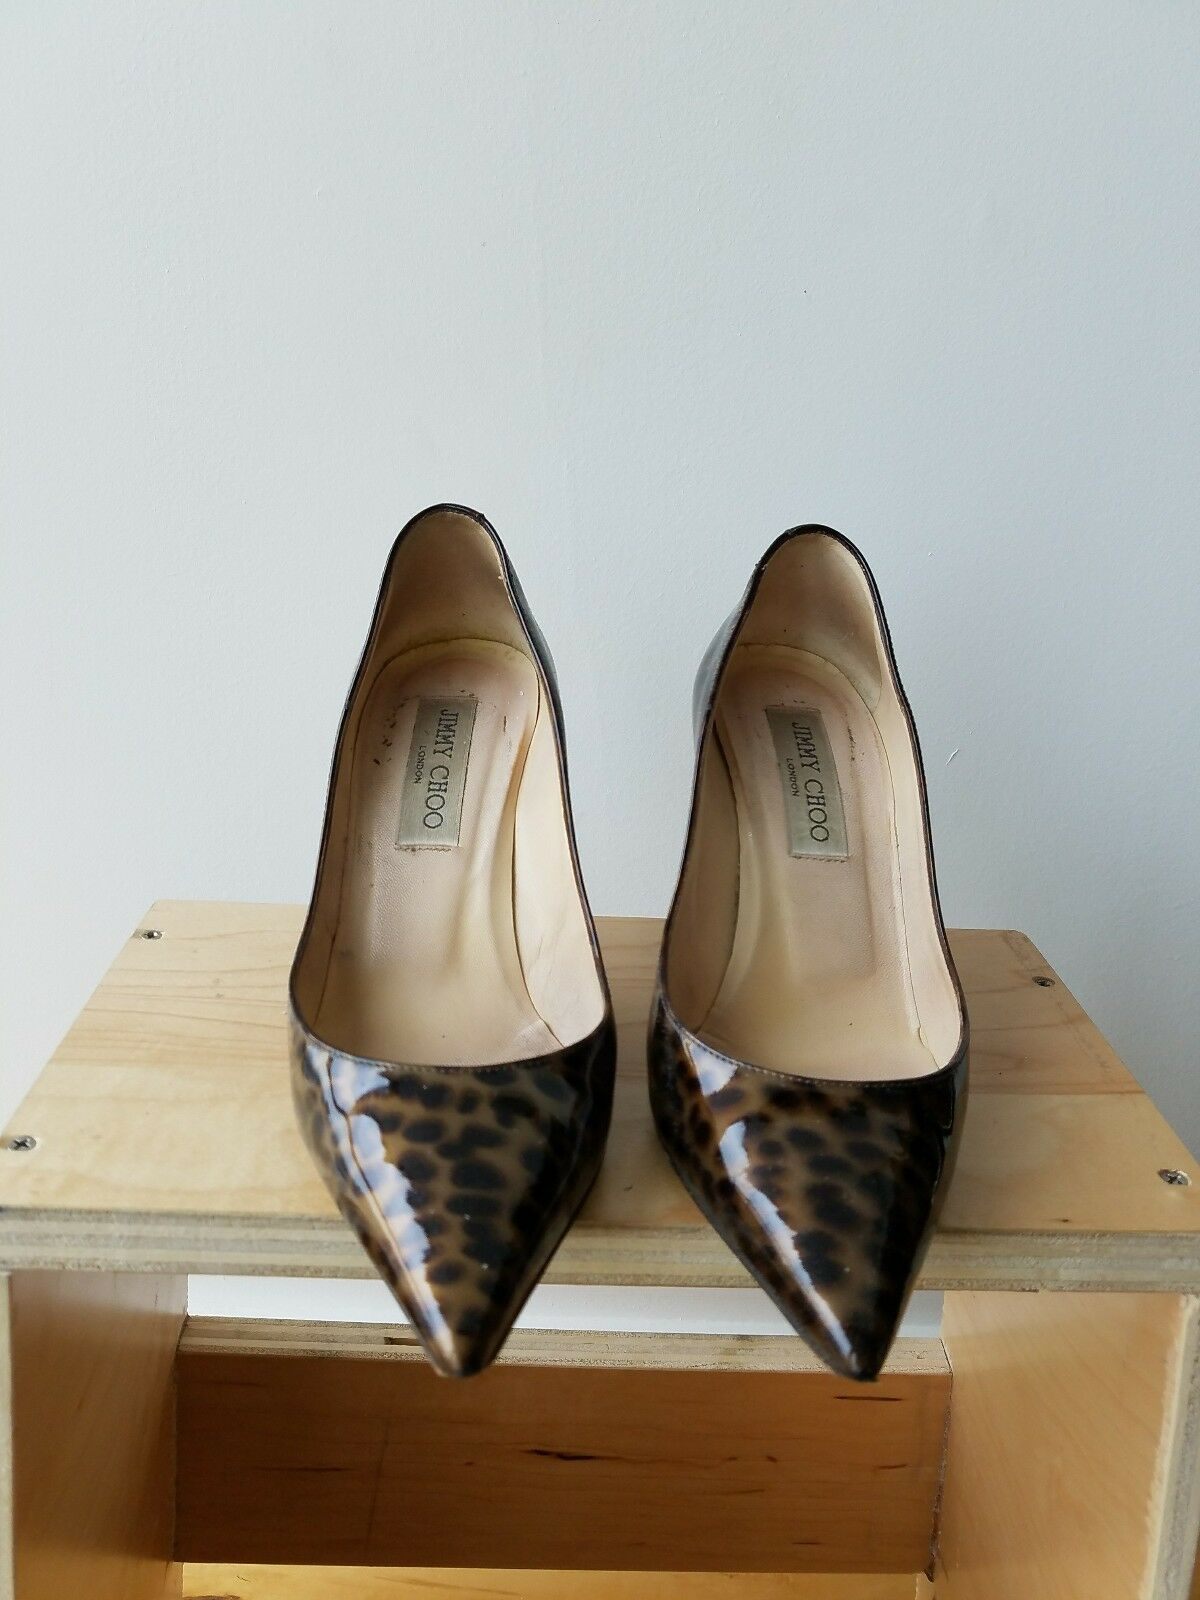 Jimmy Choo Leopard  Patent Leather Dimensione 36.5  n ° 1 online